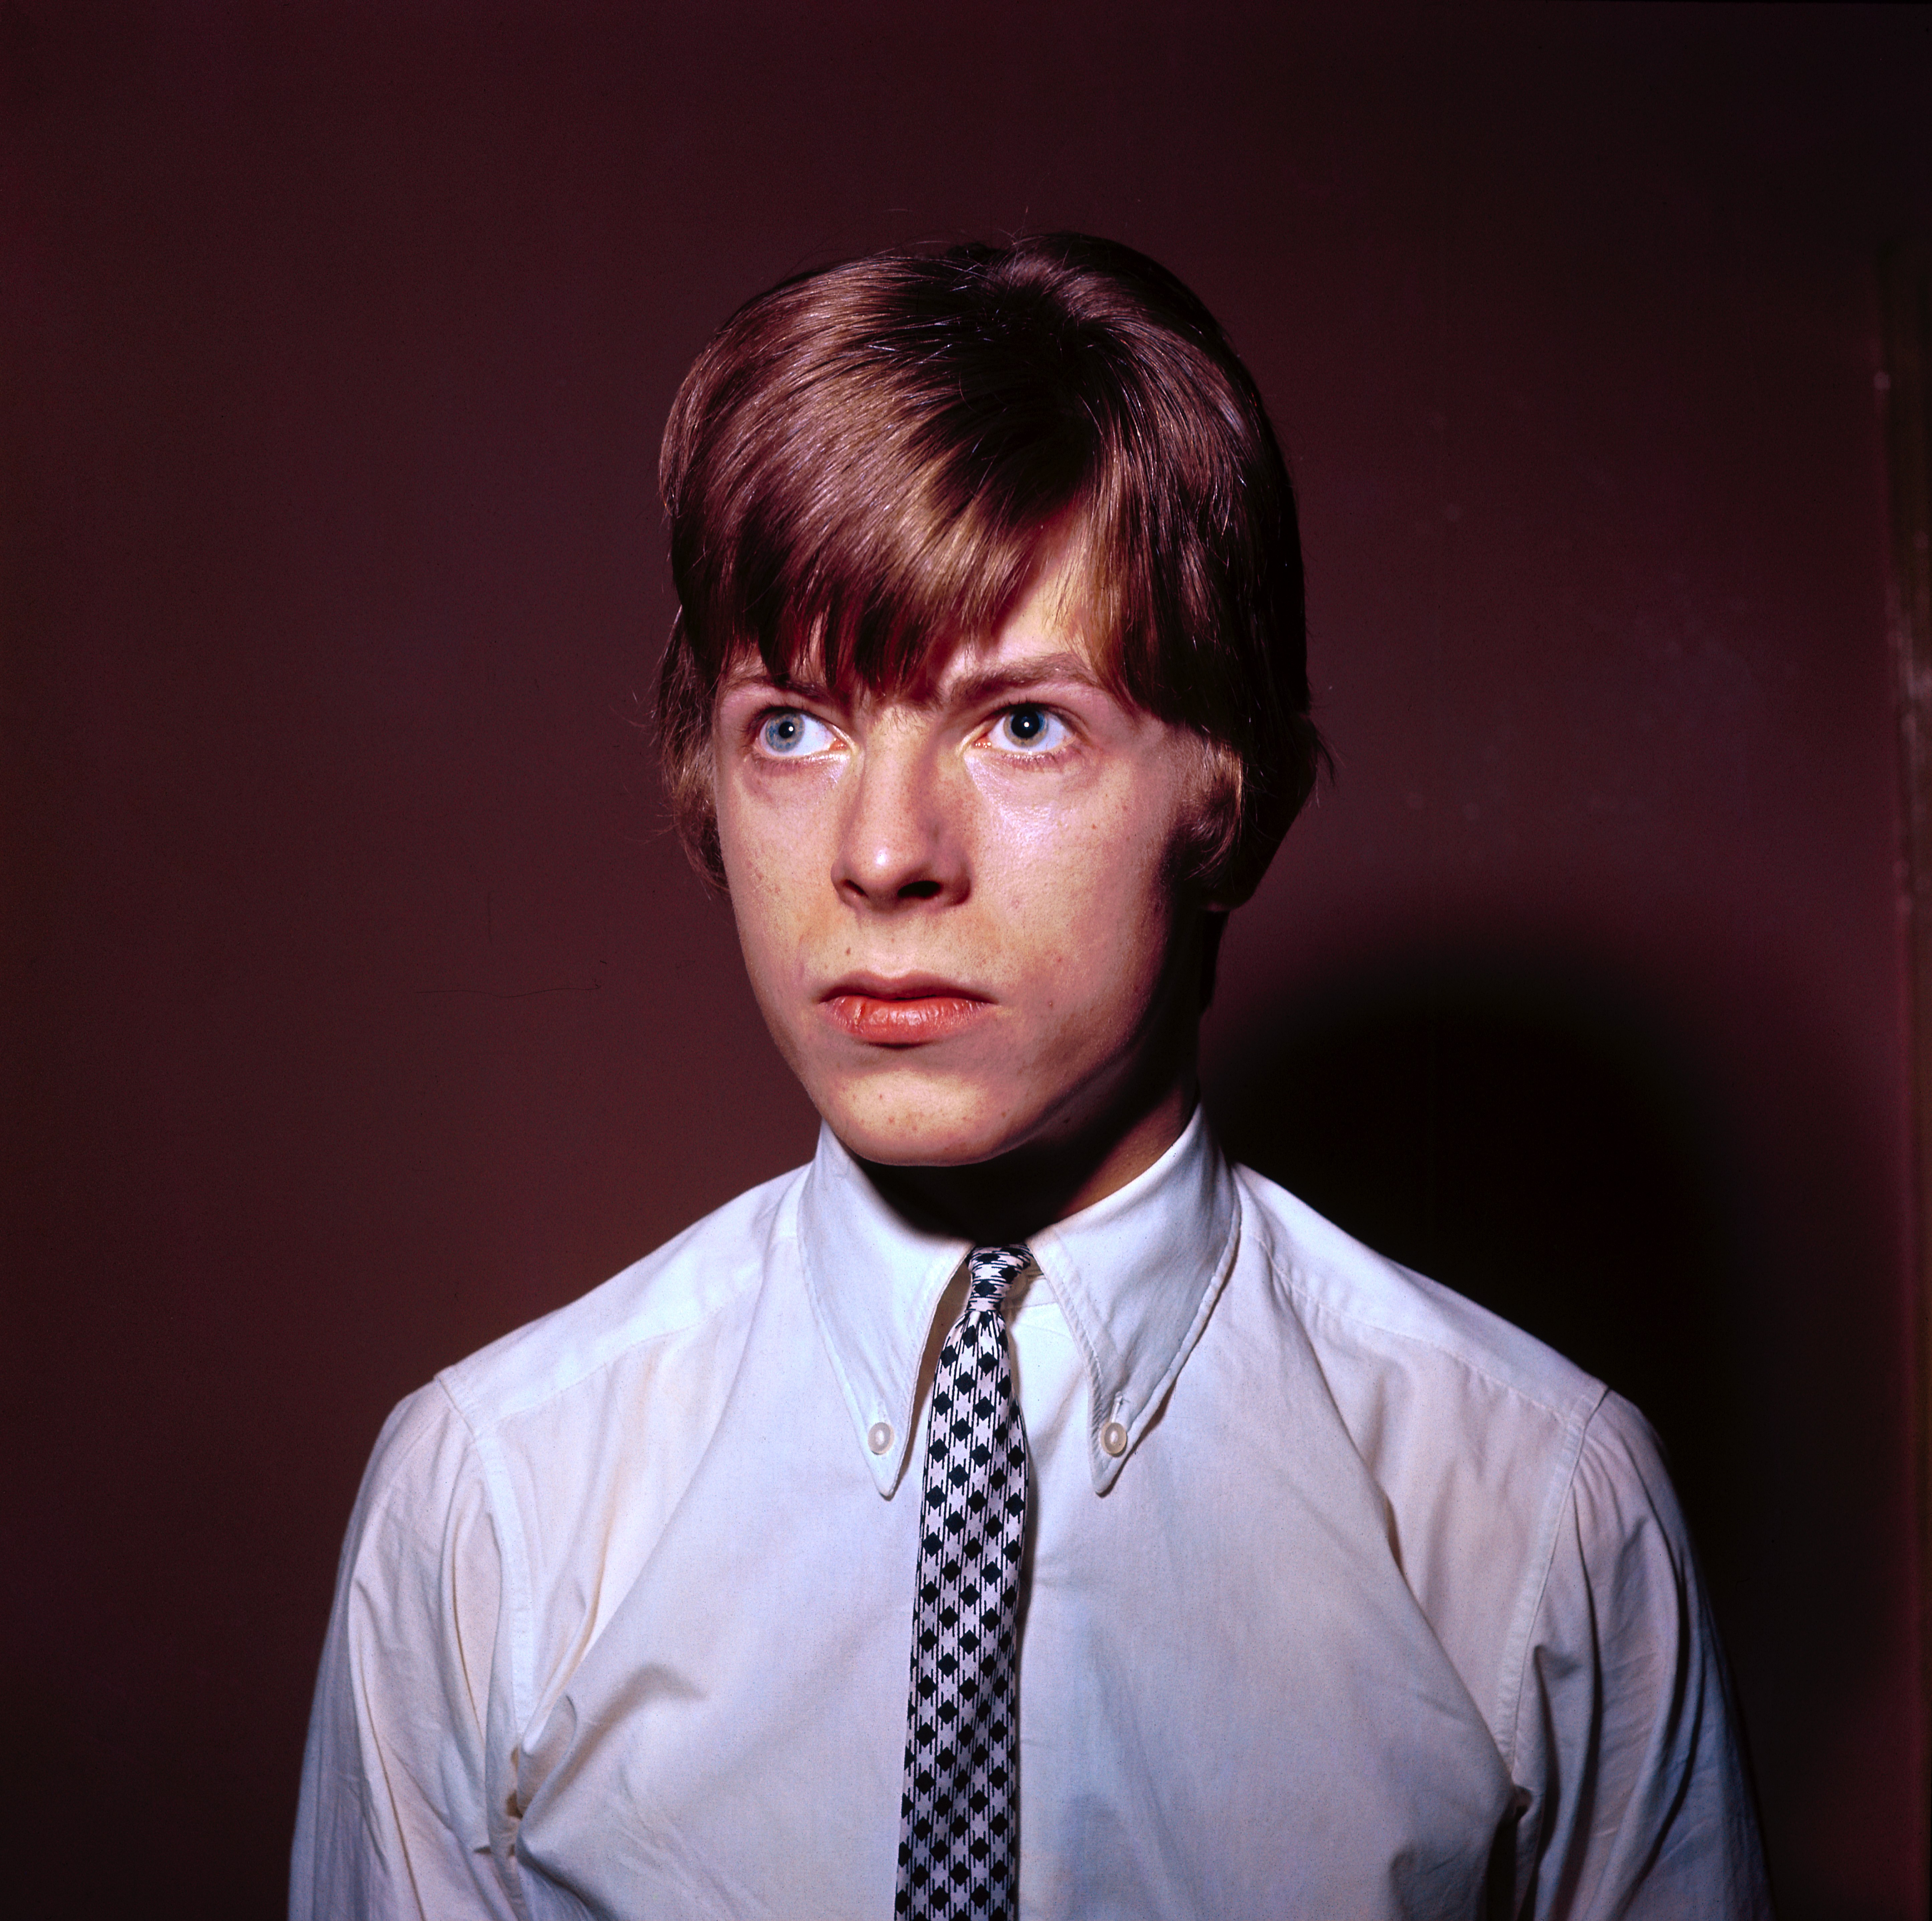 David Bowie portrait dated 1965